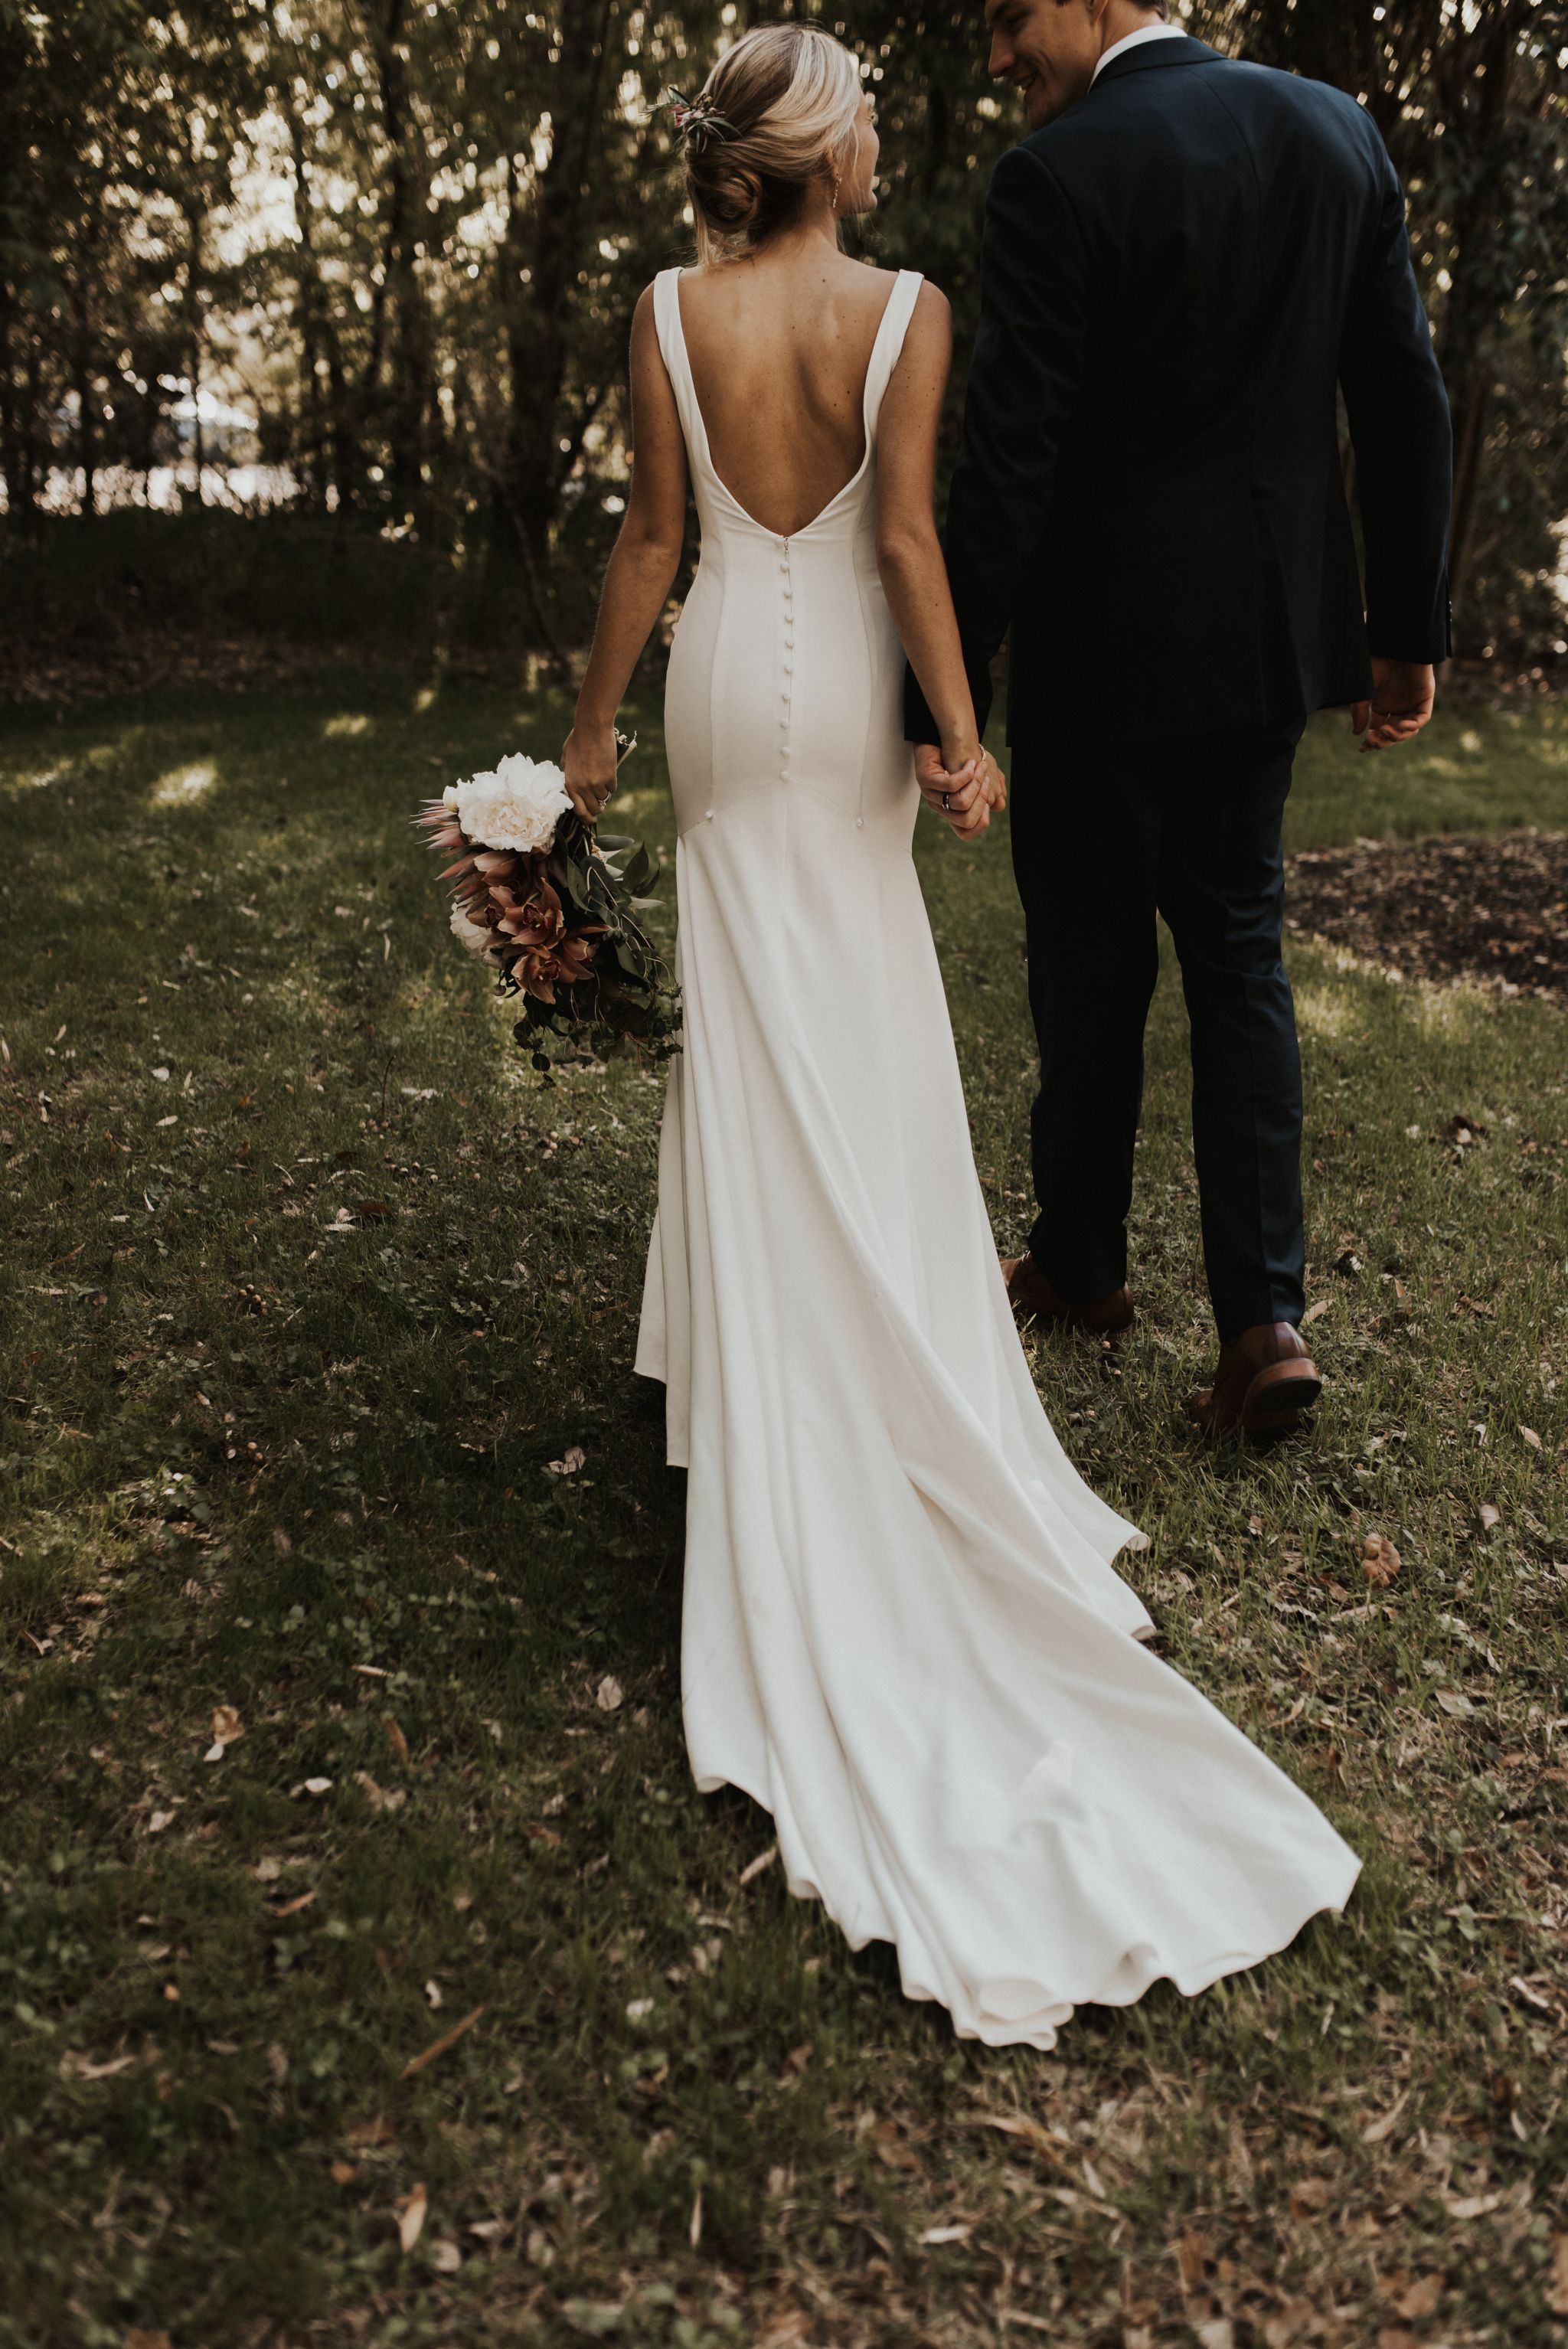 Search Used Wedding Dresses Preowned Wedding Gowns For Sale In 2020 Wedding Dresses Simple Wedding Dresses Lace Long Sleeve Wedding Guest Dresses